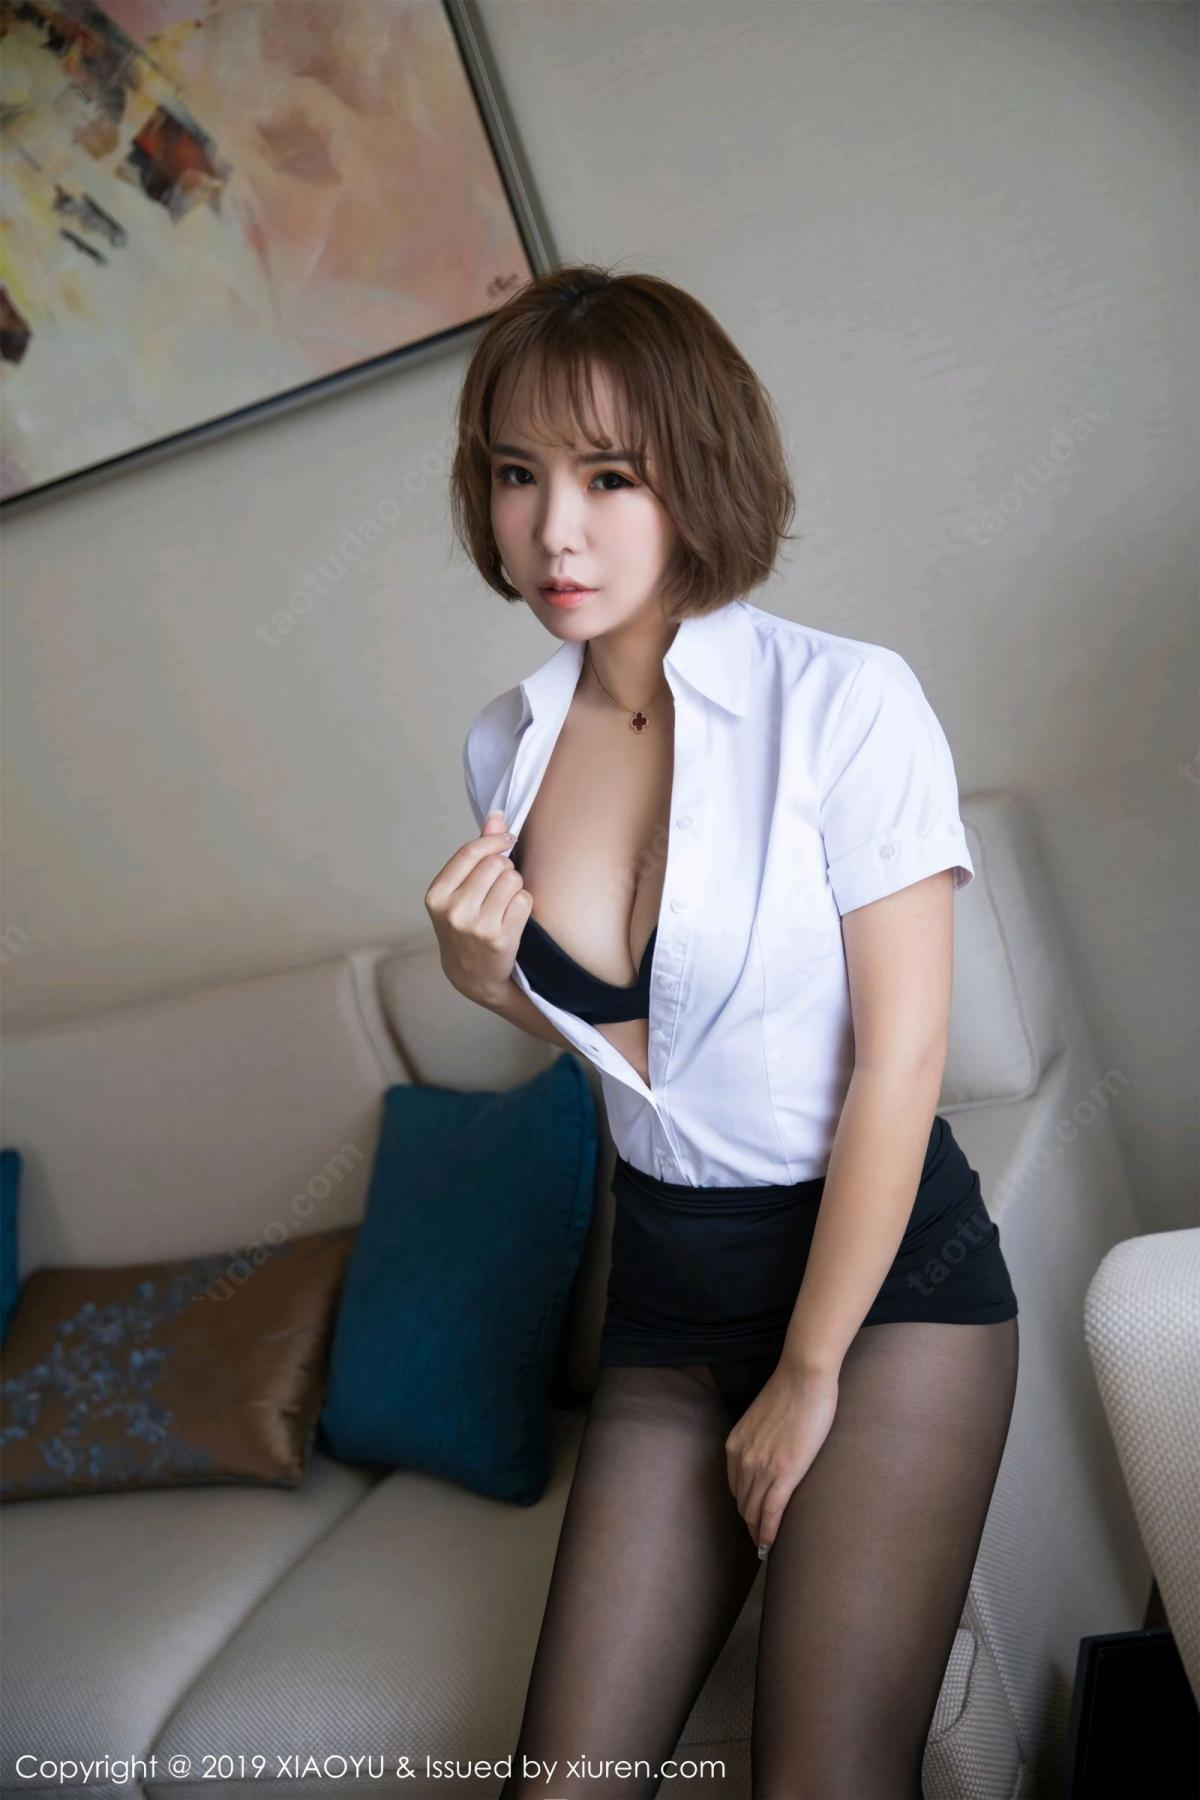 [XiaoYu] Vol.057 Ya Wen 16P, Black Silk, Chen Ya Wen, Uniform, XiaoYu